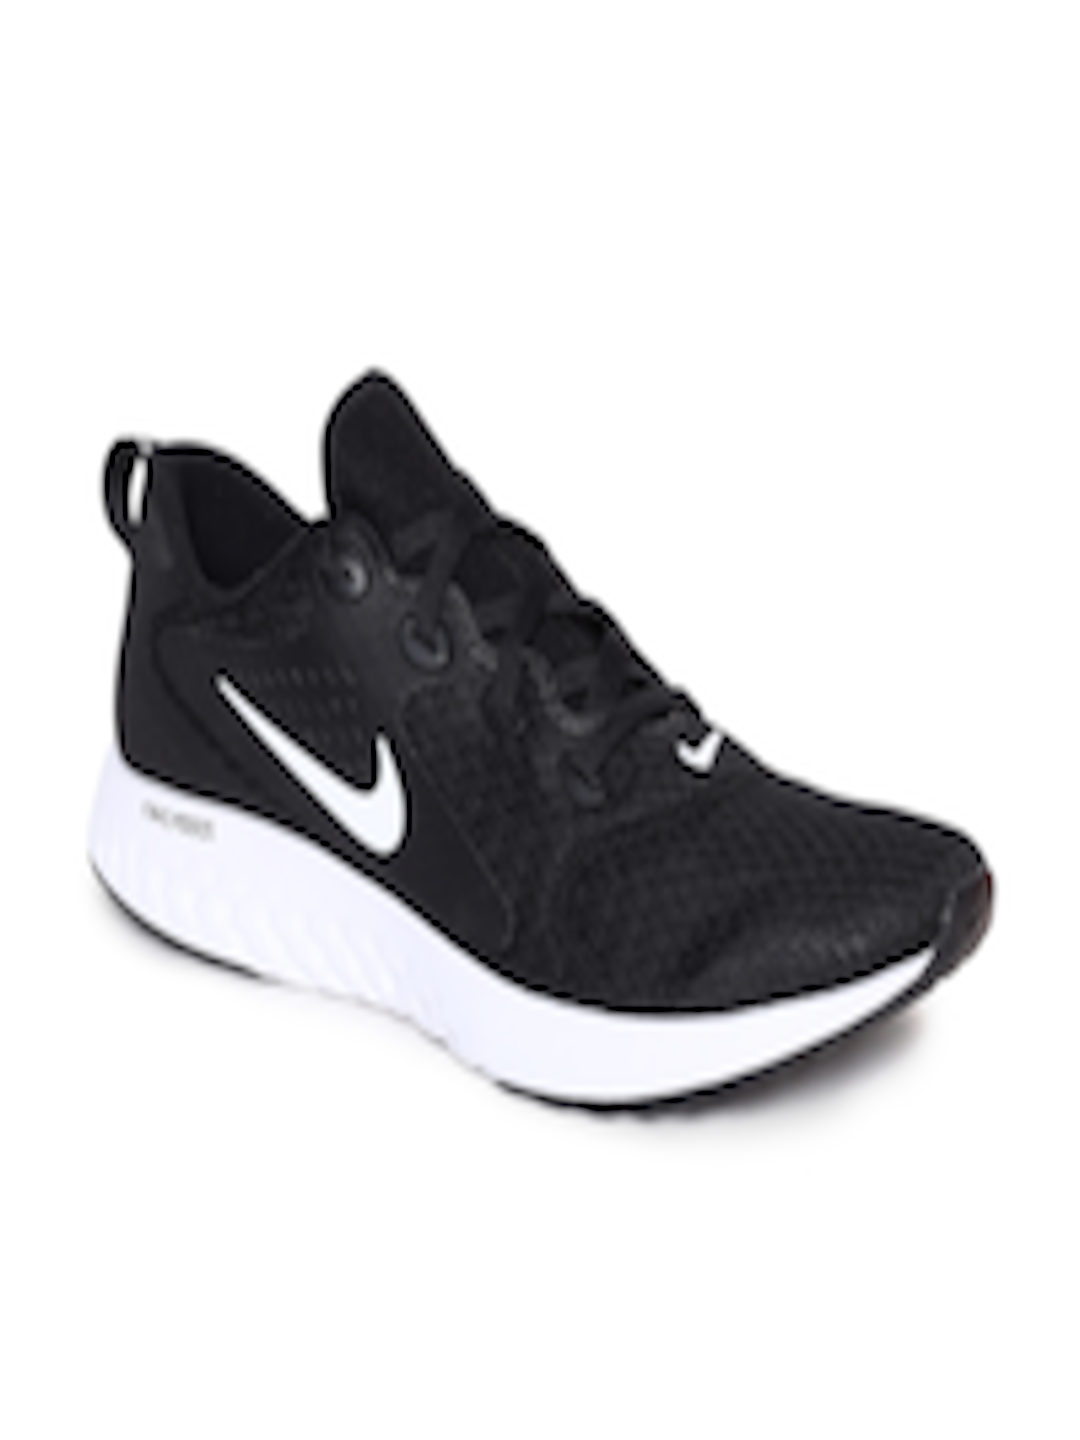 a88fd85882313 Buy Nike Men Black Legend React Running Shoes - Sports Shoes for Men  6676939